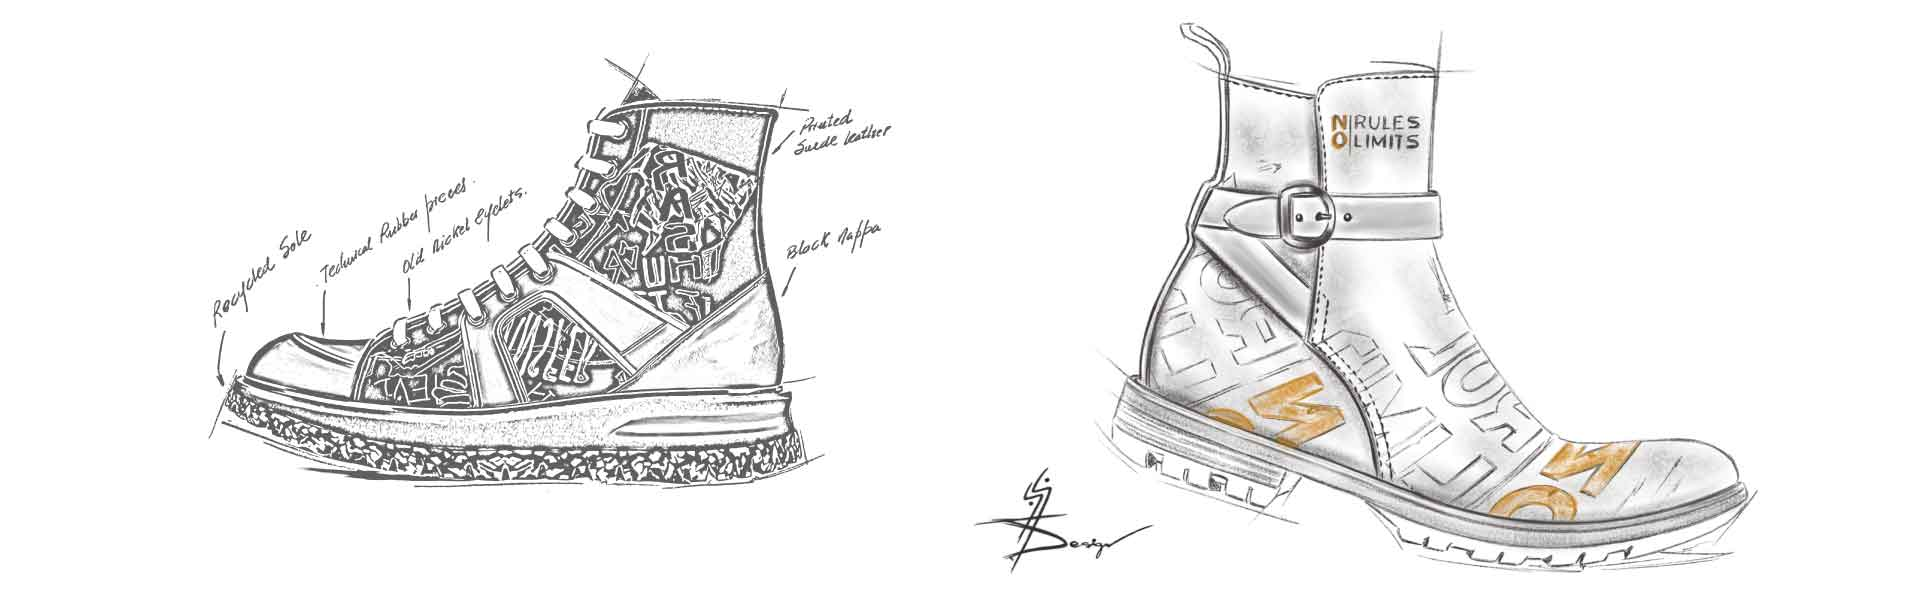 Footwear Trend FW20 Urban Prints - Sketches